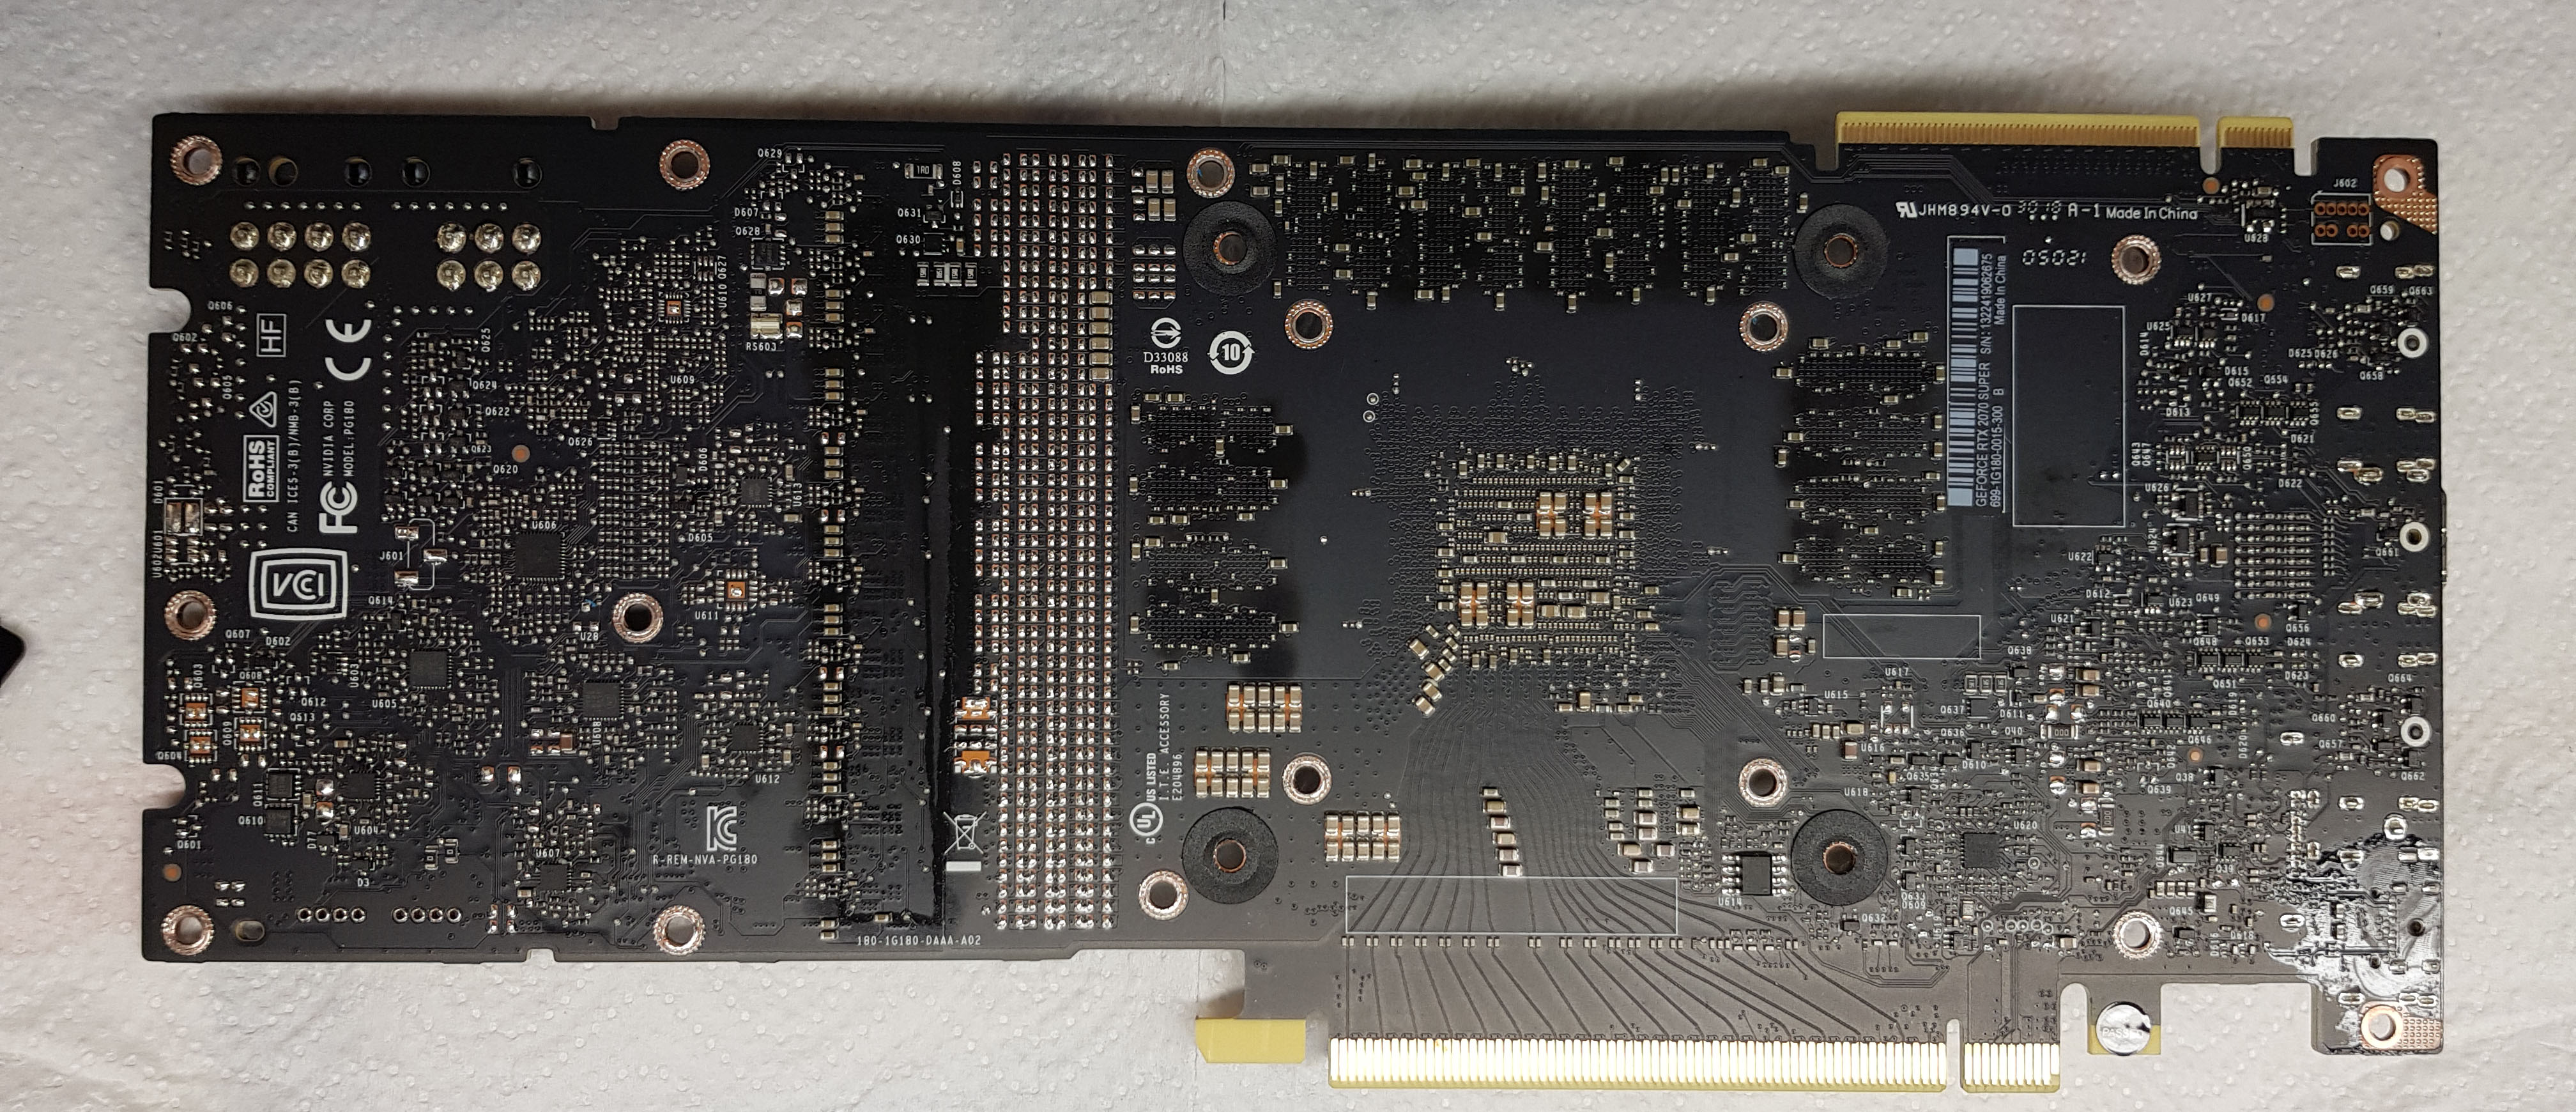 RTX 2070 SUPER with TU104-100A-A1 | TechPowerUp Forums